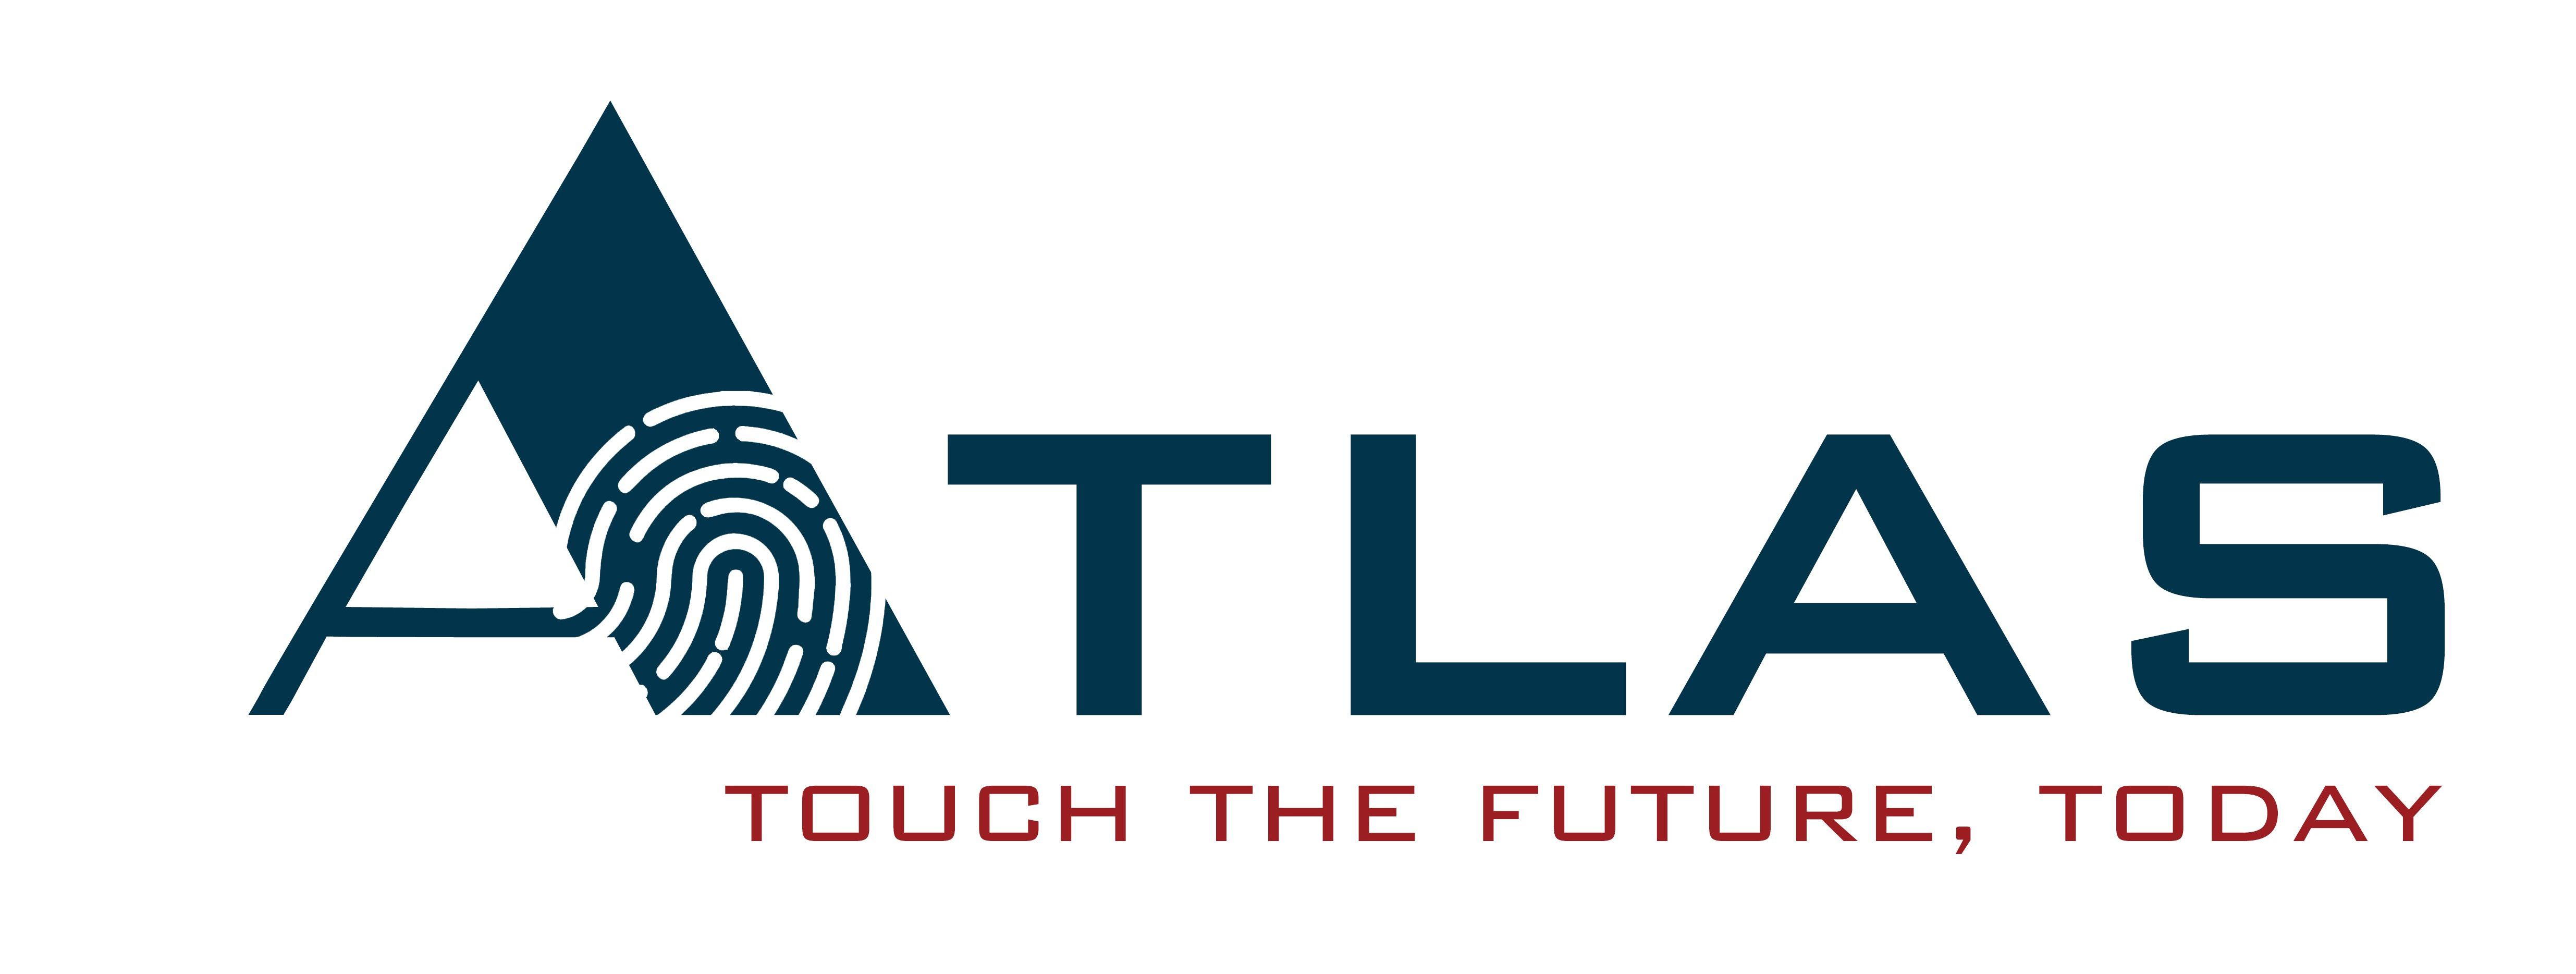 Atlas Technology International, Inc. Announces Relocation of Corporate Headquarters to United States